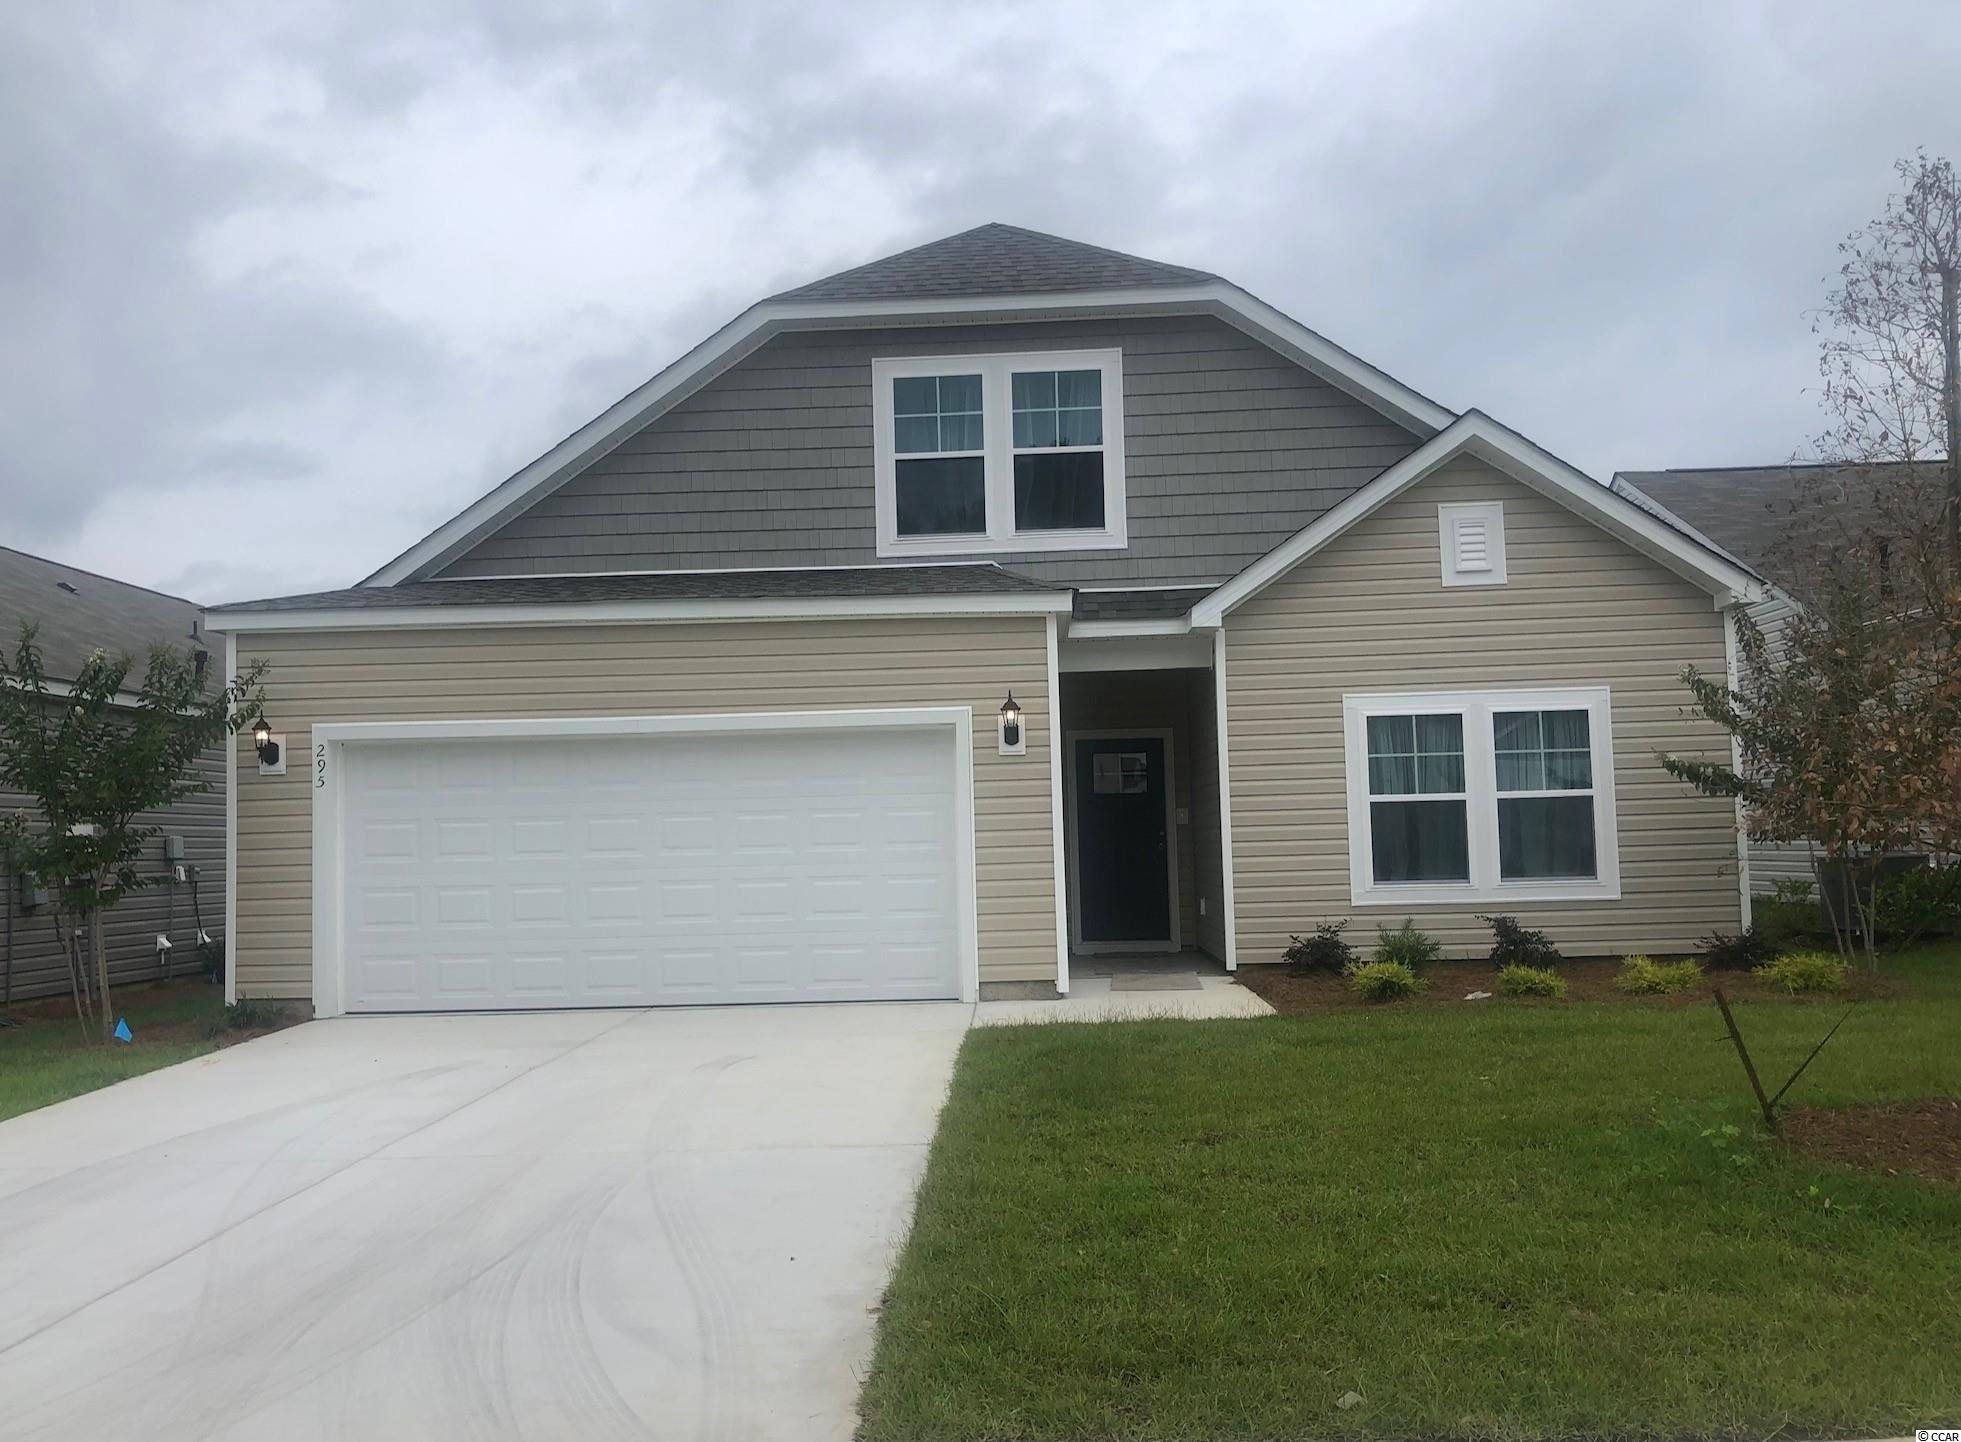 This is a To Be Built home.  Hampton Park is a natural Gas Community located on 707 near 544.  We are located minutes from beaches, shopping, golf, restaurants, medical facilities and more.  This is a small 80 home community this is a pond lot. The pool will be starting soon.  We are brand new and these are introductory prices. Come see us soon. This home features 3 bedrooms downstairs and a 4th bedroom, bath and loft upstairs.  Great for a guest suite!   *Photos are of a similar home and do not reflect color selections and options of actual unit for sale.*